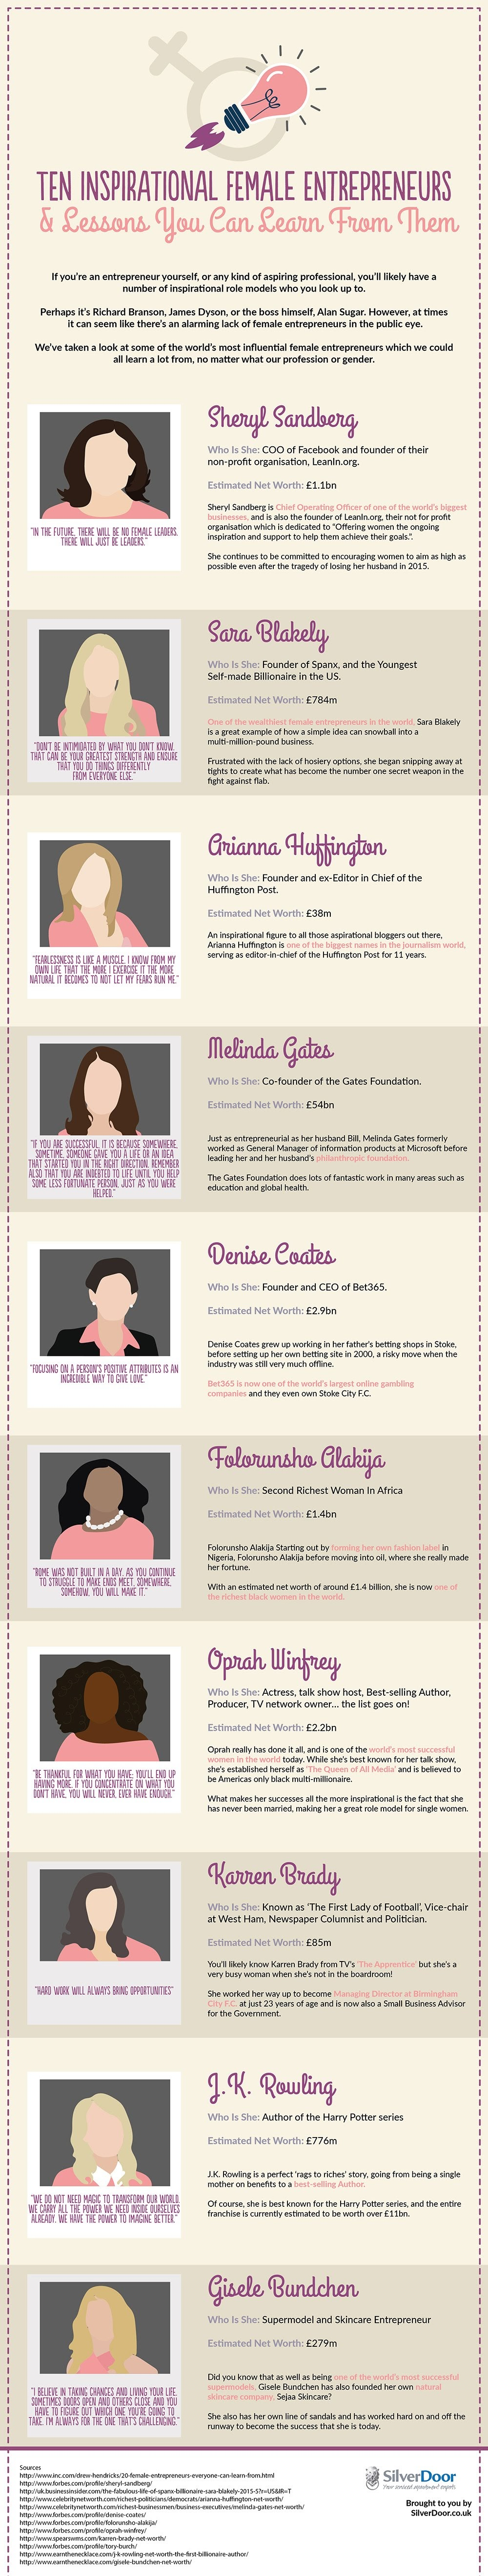 10 Inspirational Female Entrepreneurs & Lessons You Can Learn From Them